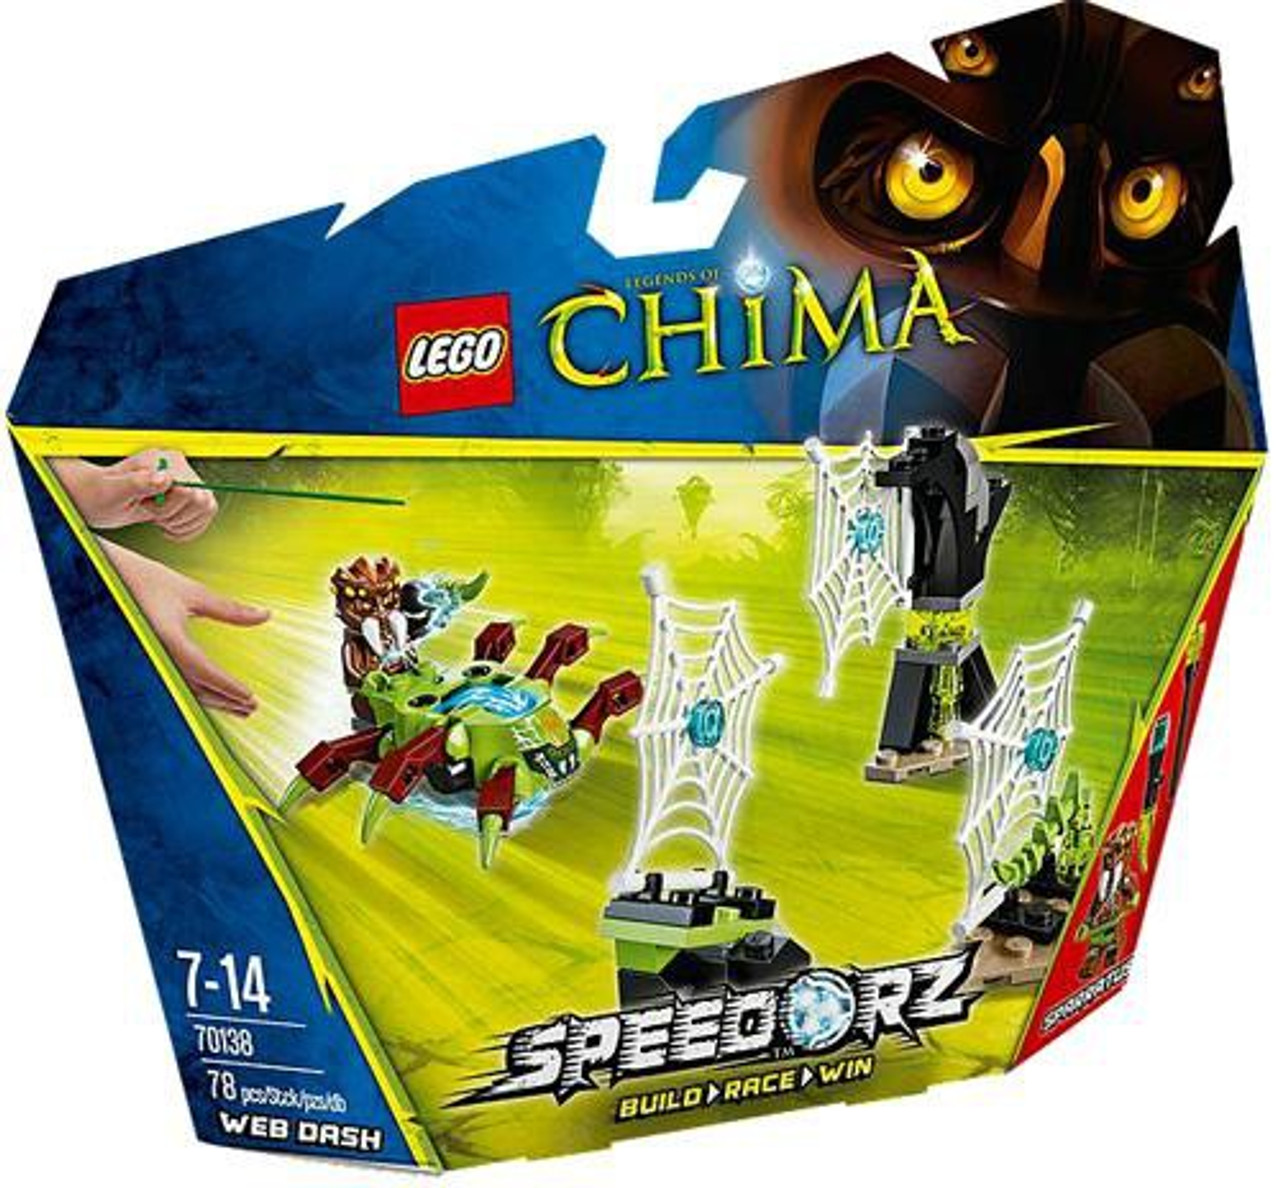 LEGO Legends of Chima Web Dash Set #70138